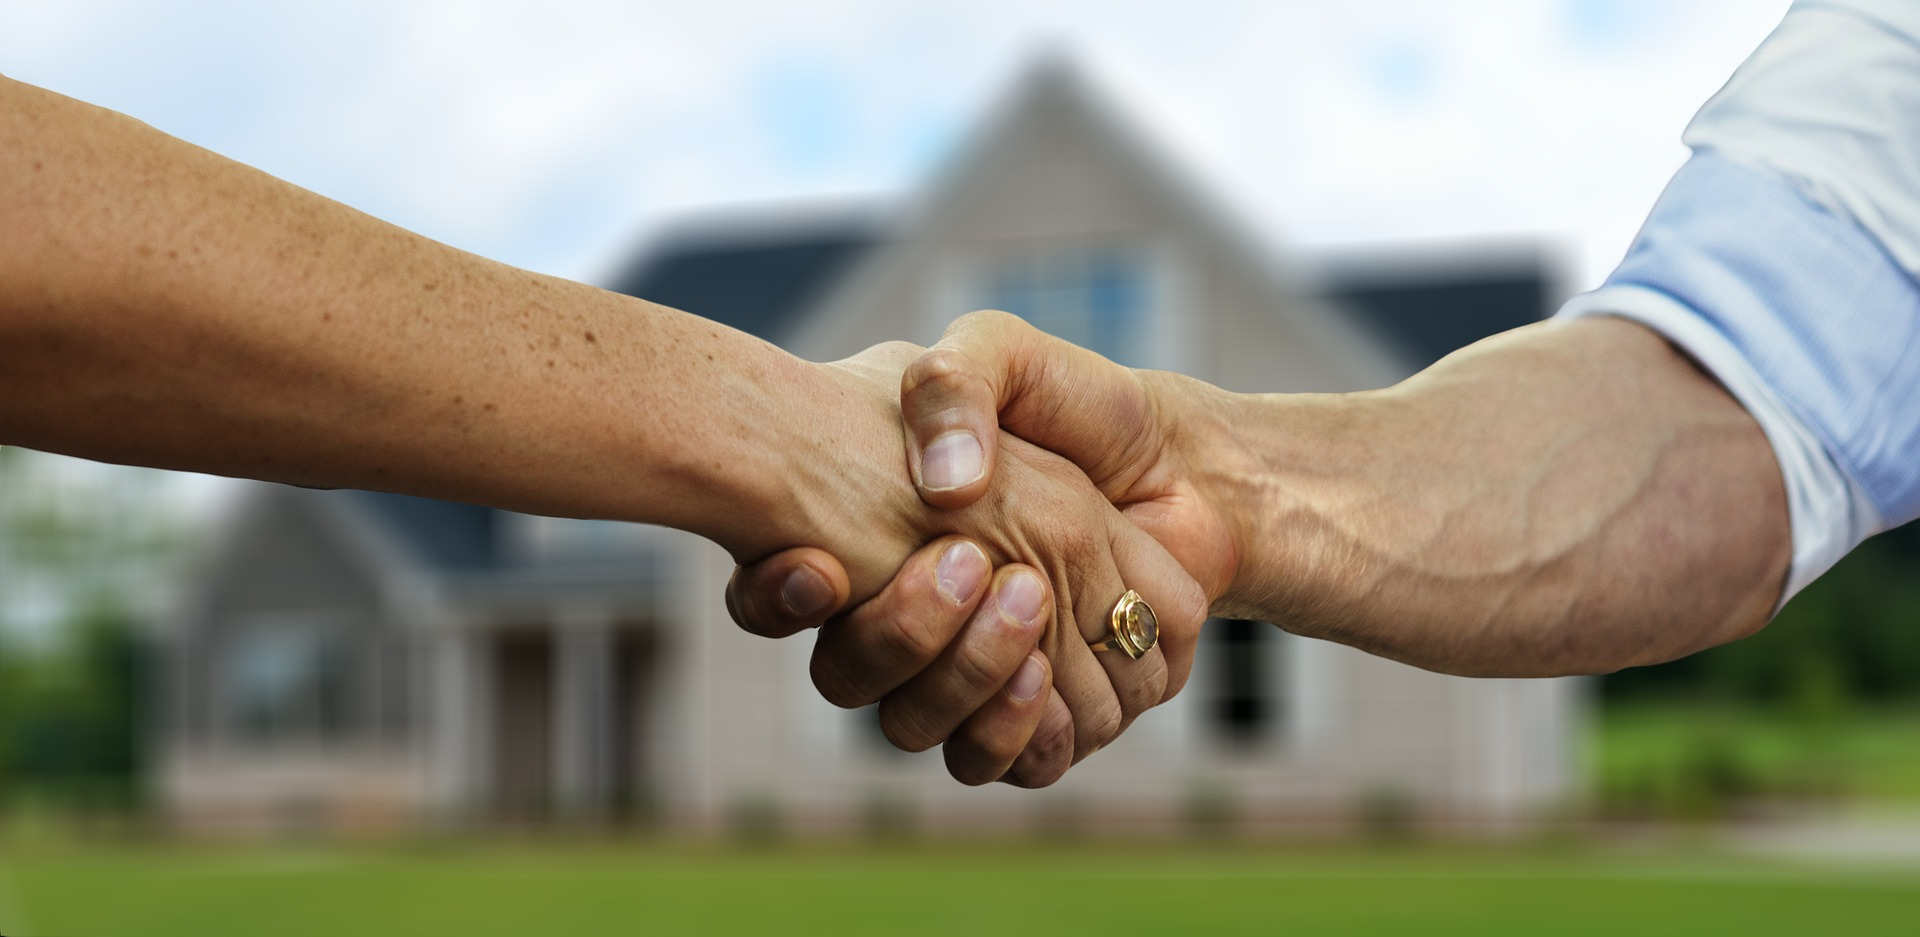 handshake with house in background.jpg